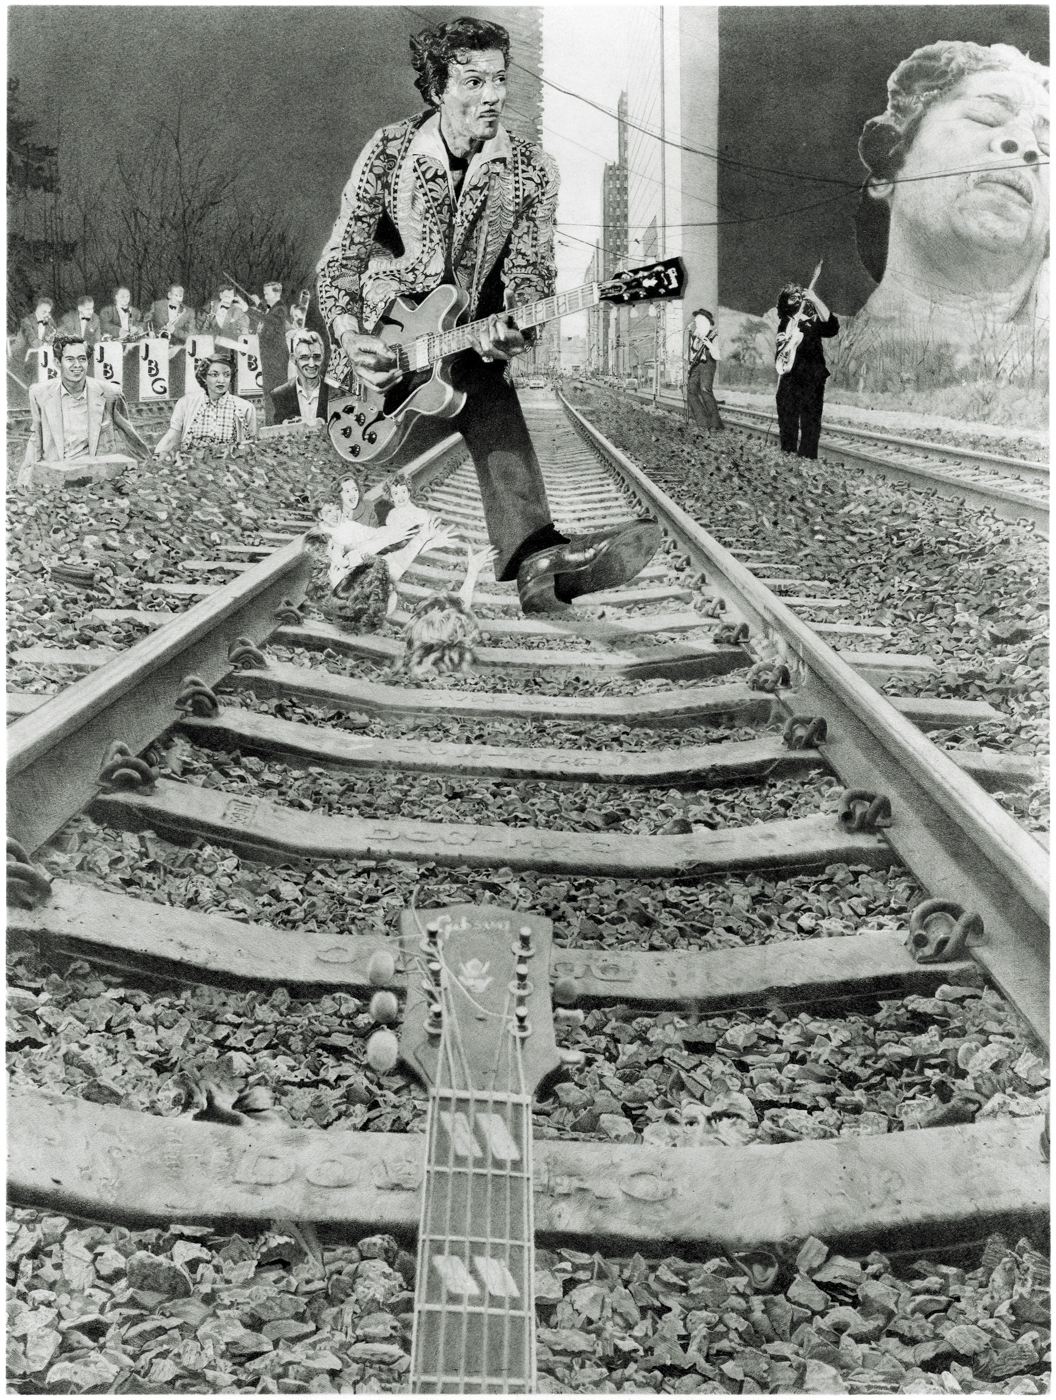 Chuck Berry in Derbyshire